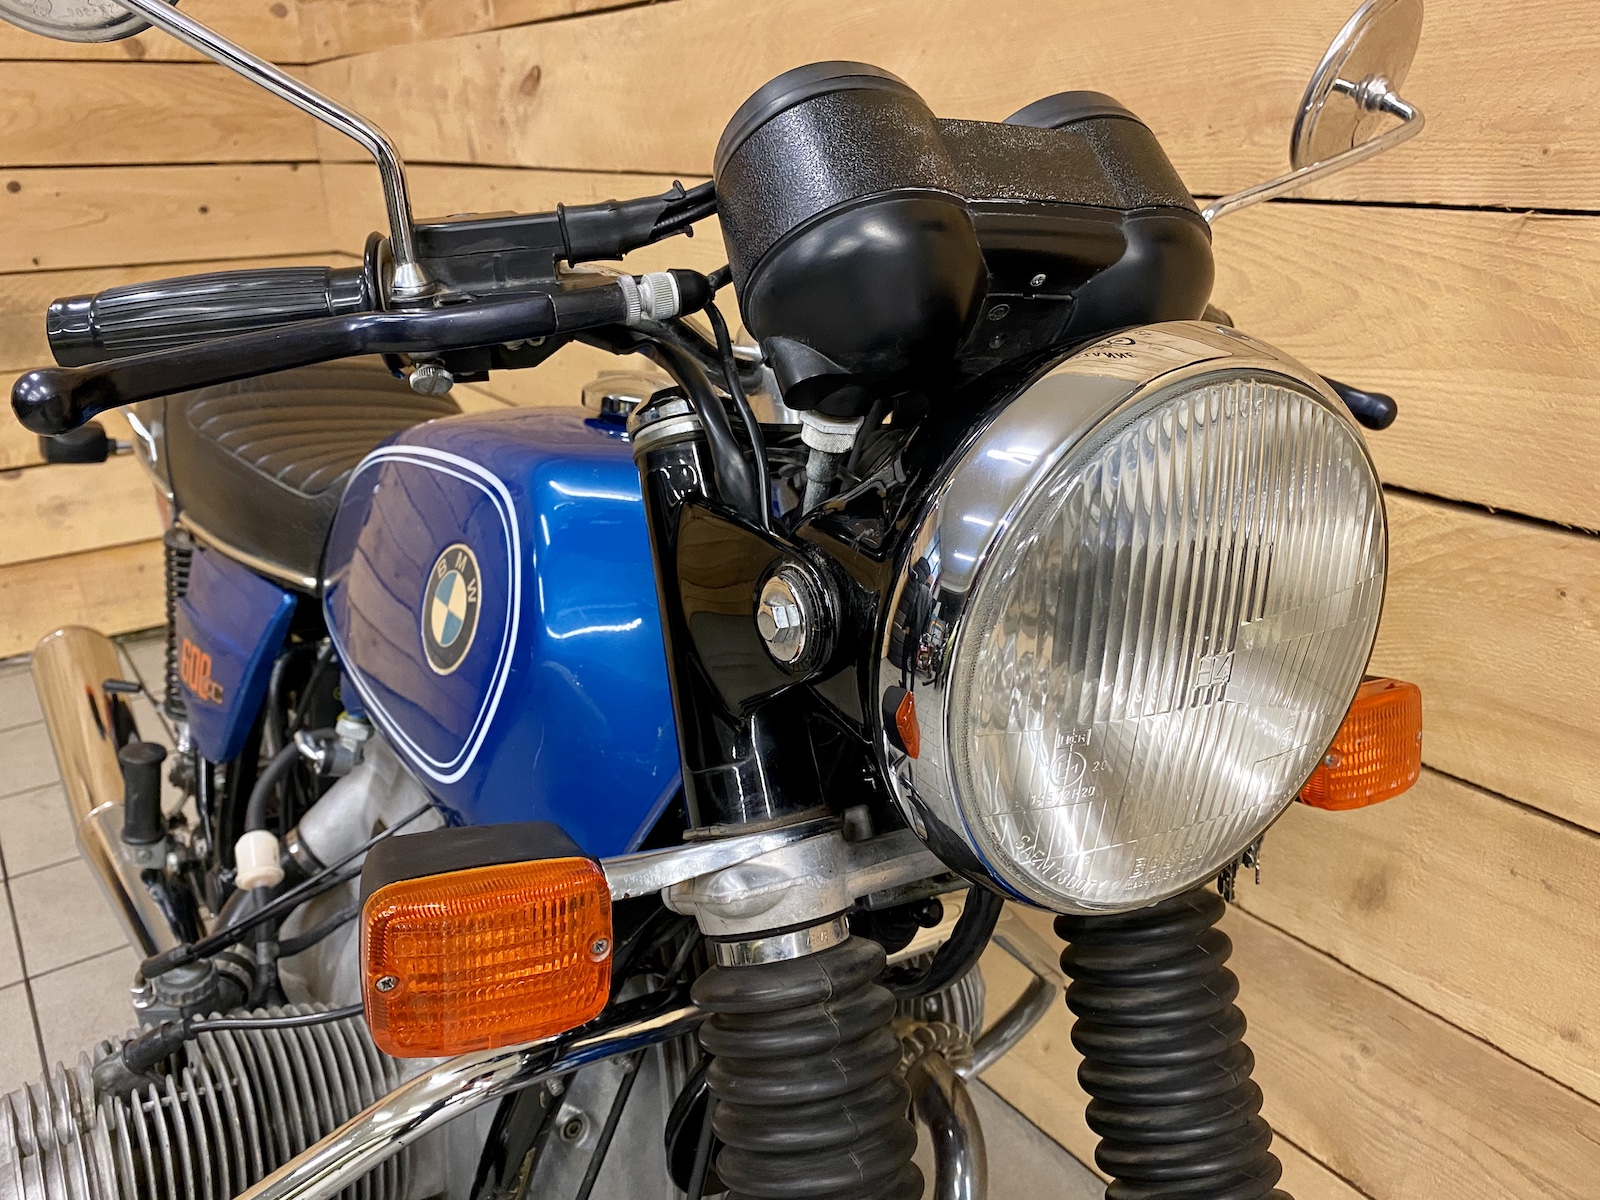 bmw_r60_676_cezanne_classic_motorcycle_7-80.jpg